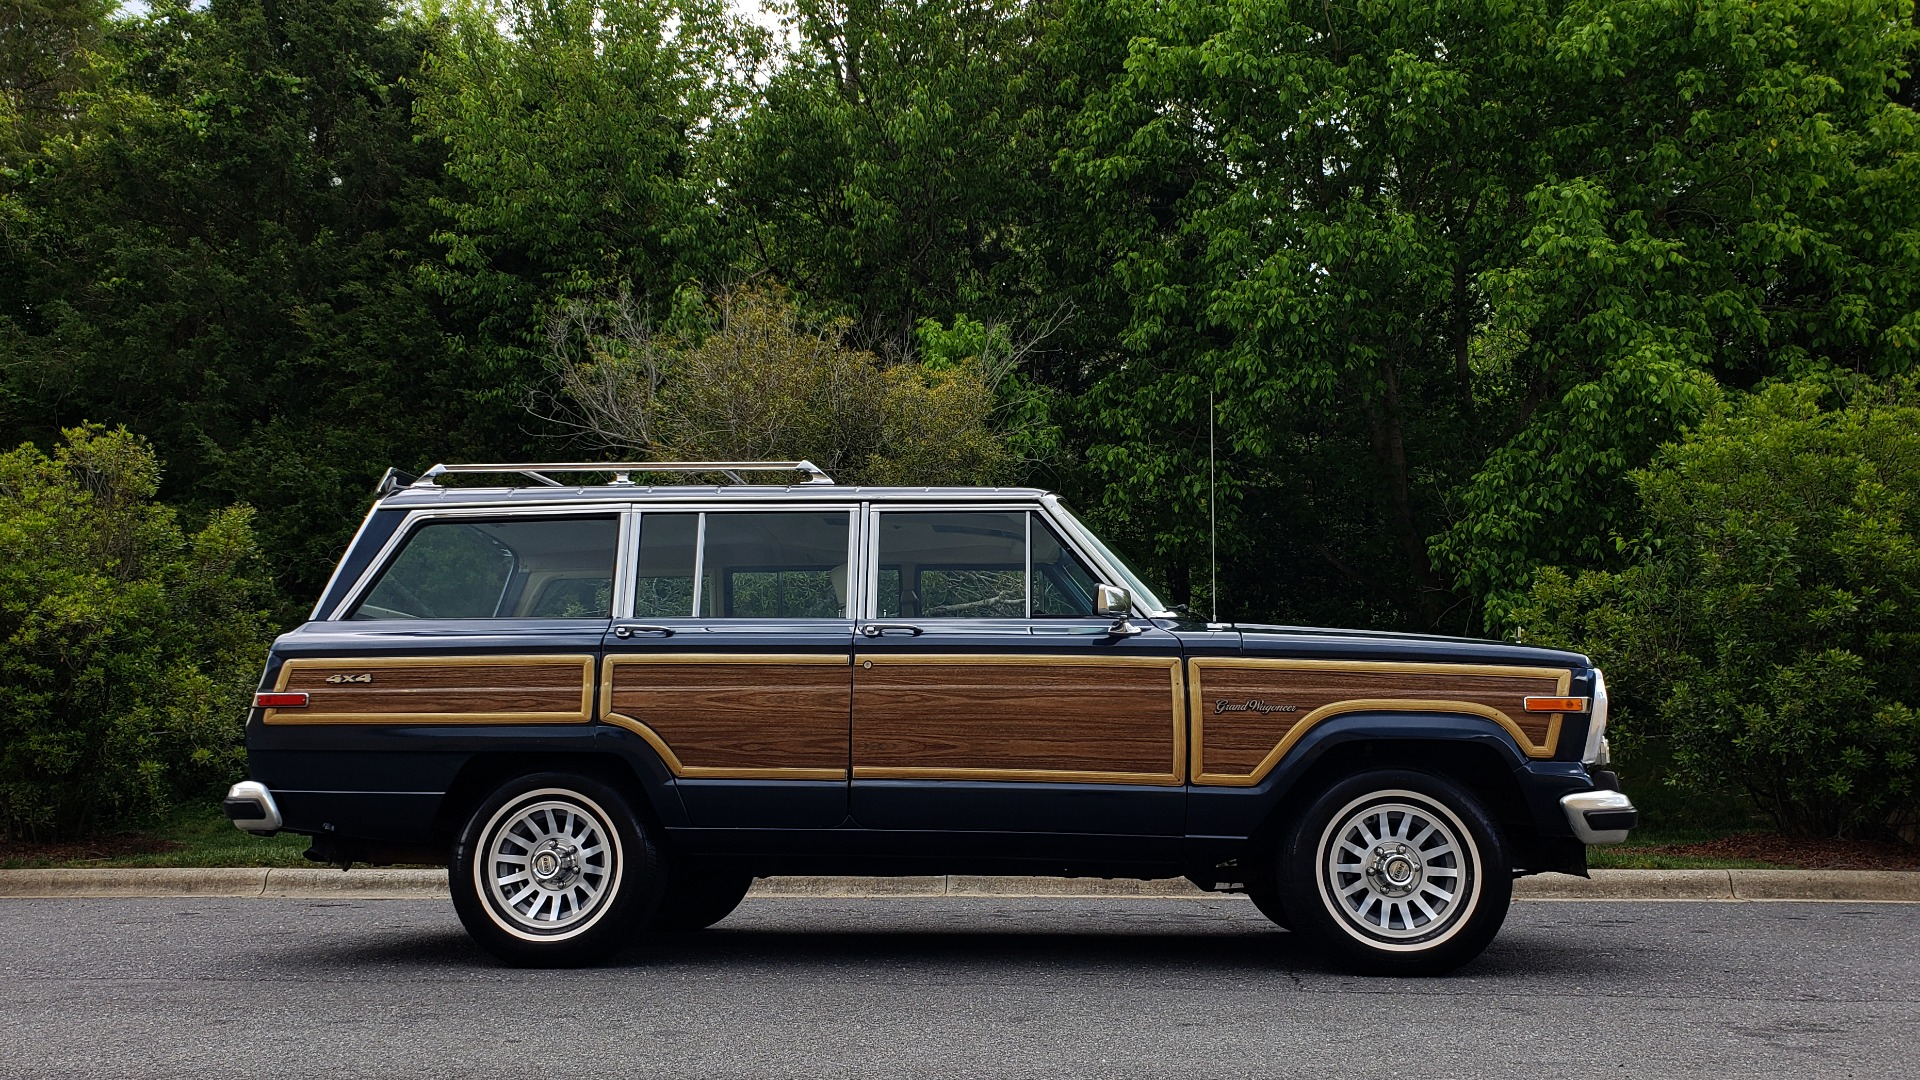 Used 1989 Jeep GRAND WAGONEER 4x4 / 5.9L V8 / 3-SPEED AUTO / PIONEER STEREO for sale Sold at Formula Imports in Charlotte NC 28227 5